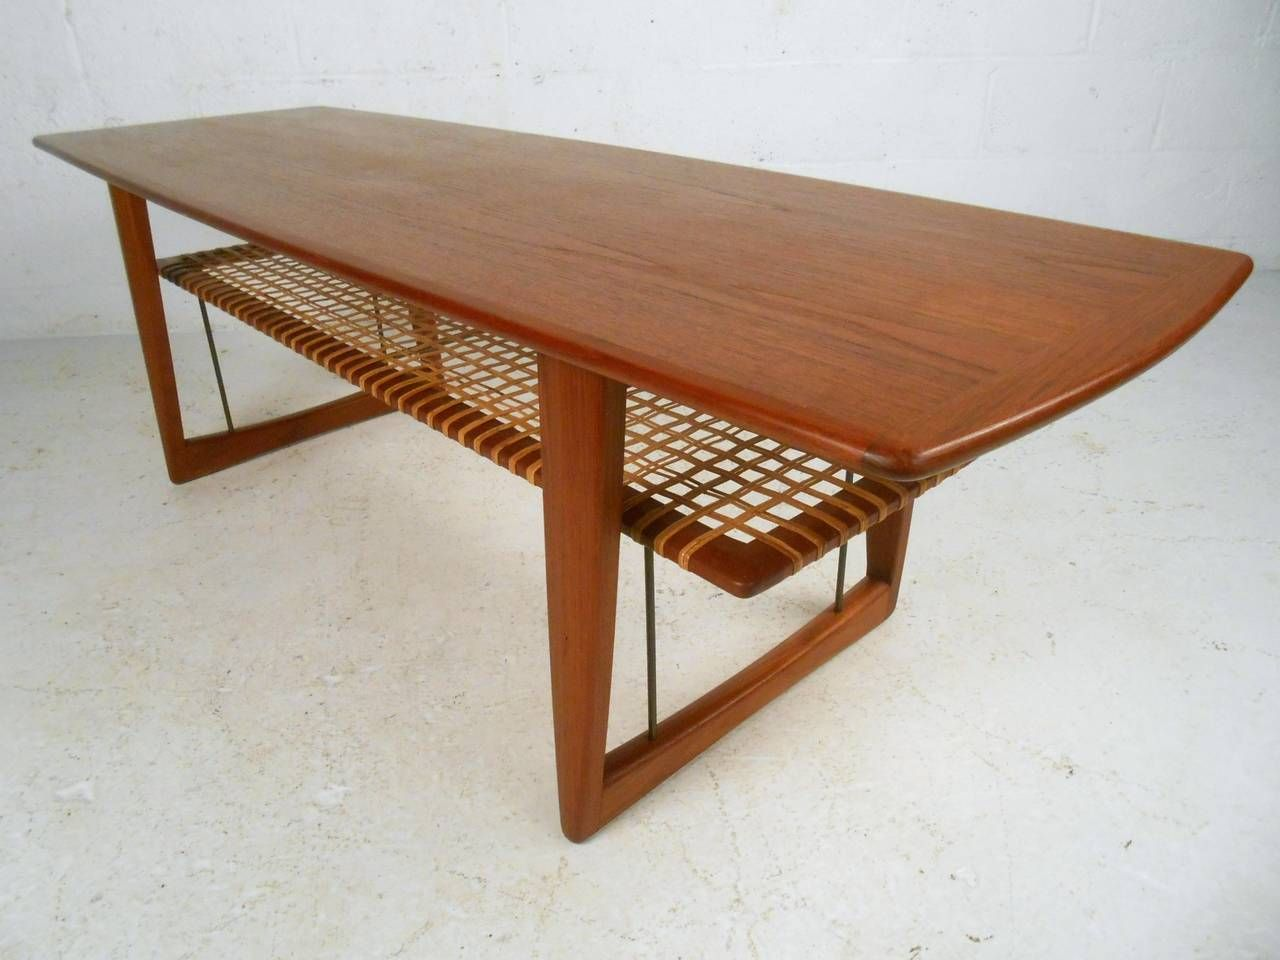 Mid Century Danish Teak Cane Shelf Coffee Table In The Style Of Peter Hvidt 1stdibs Com Danish Modern Coffee Table Coffee Table Design Coffee Table